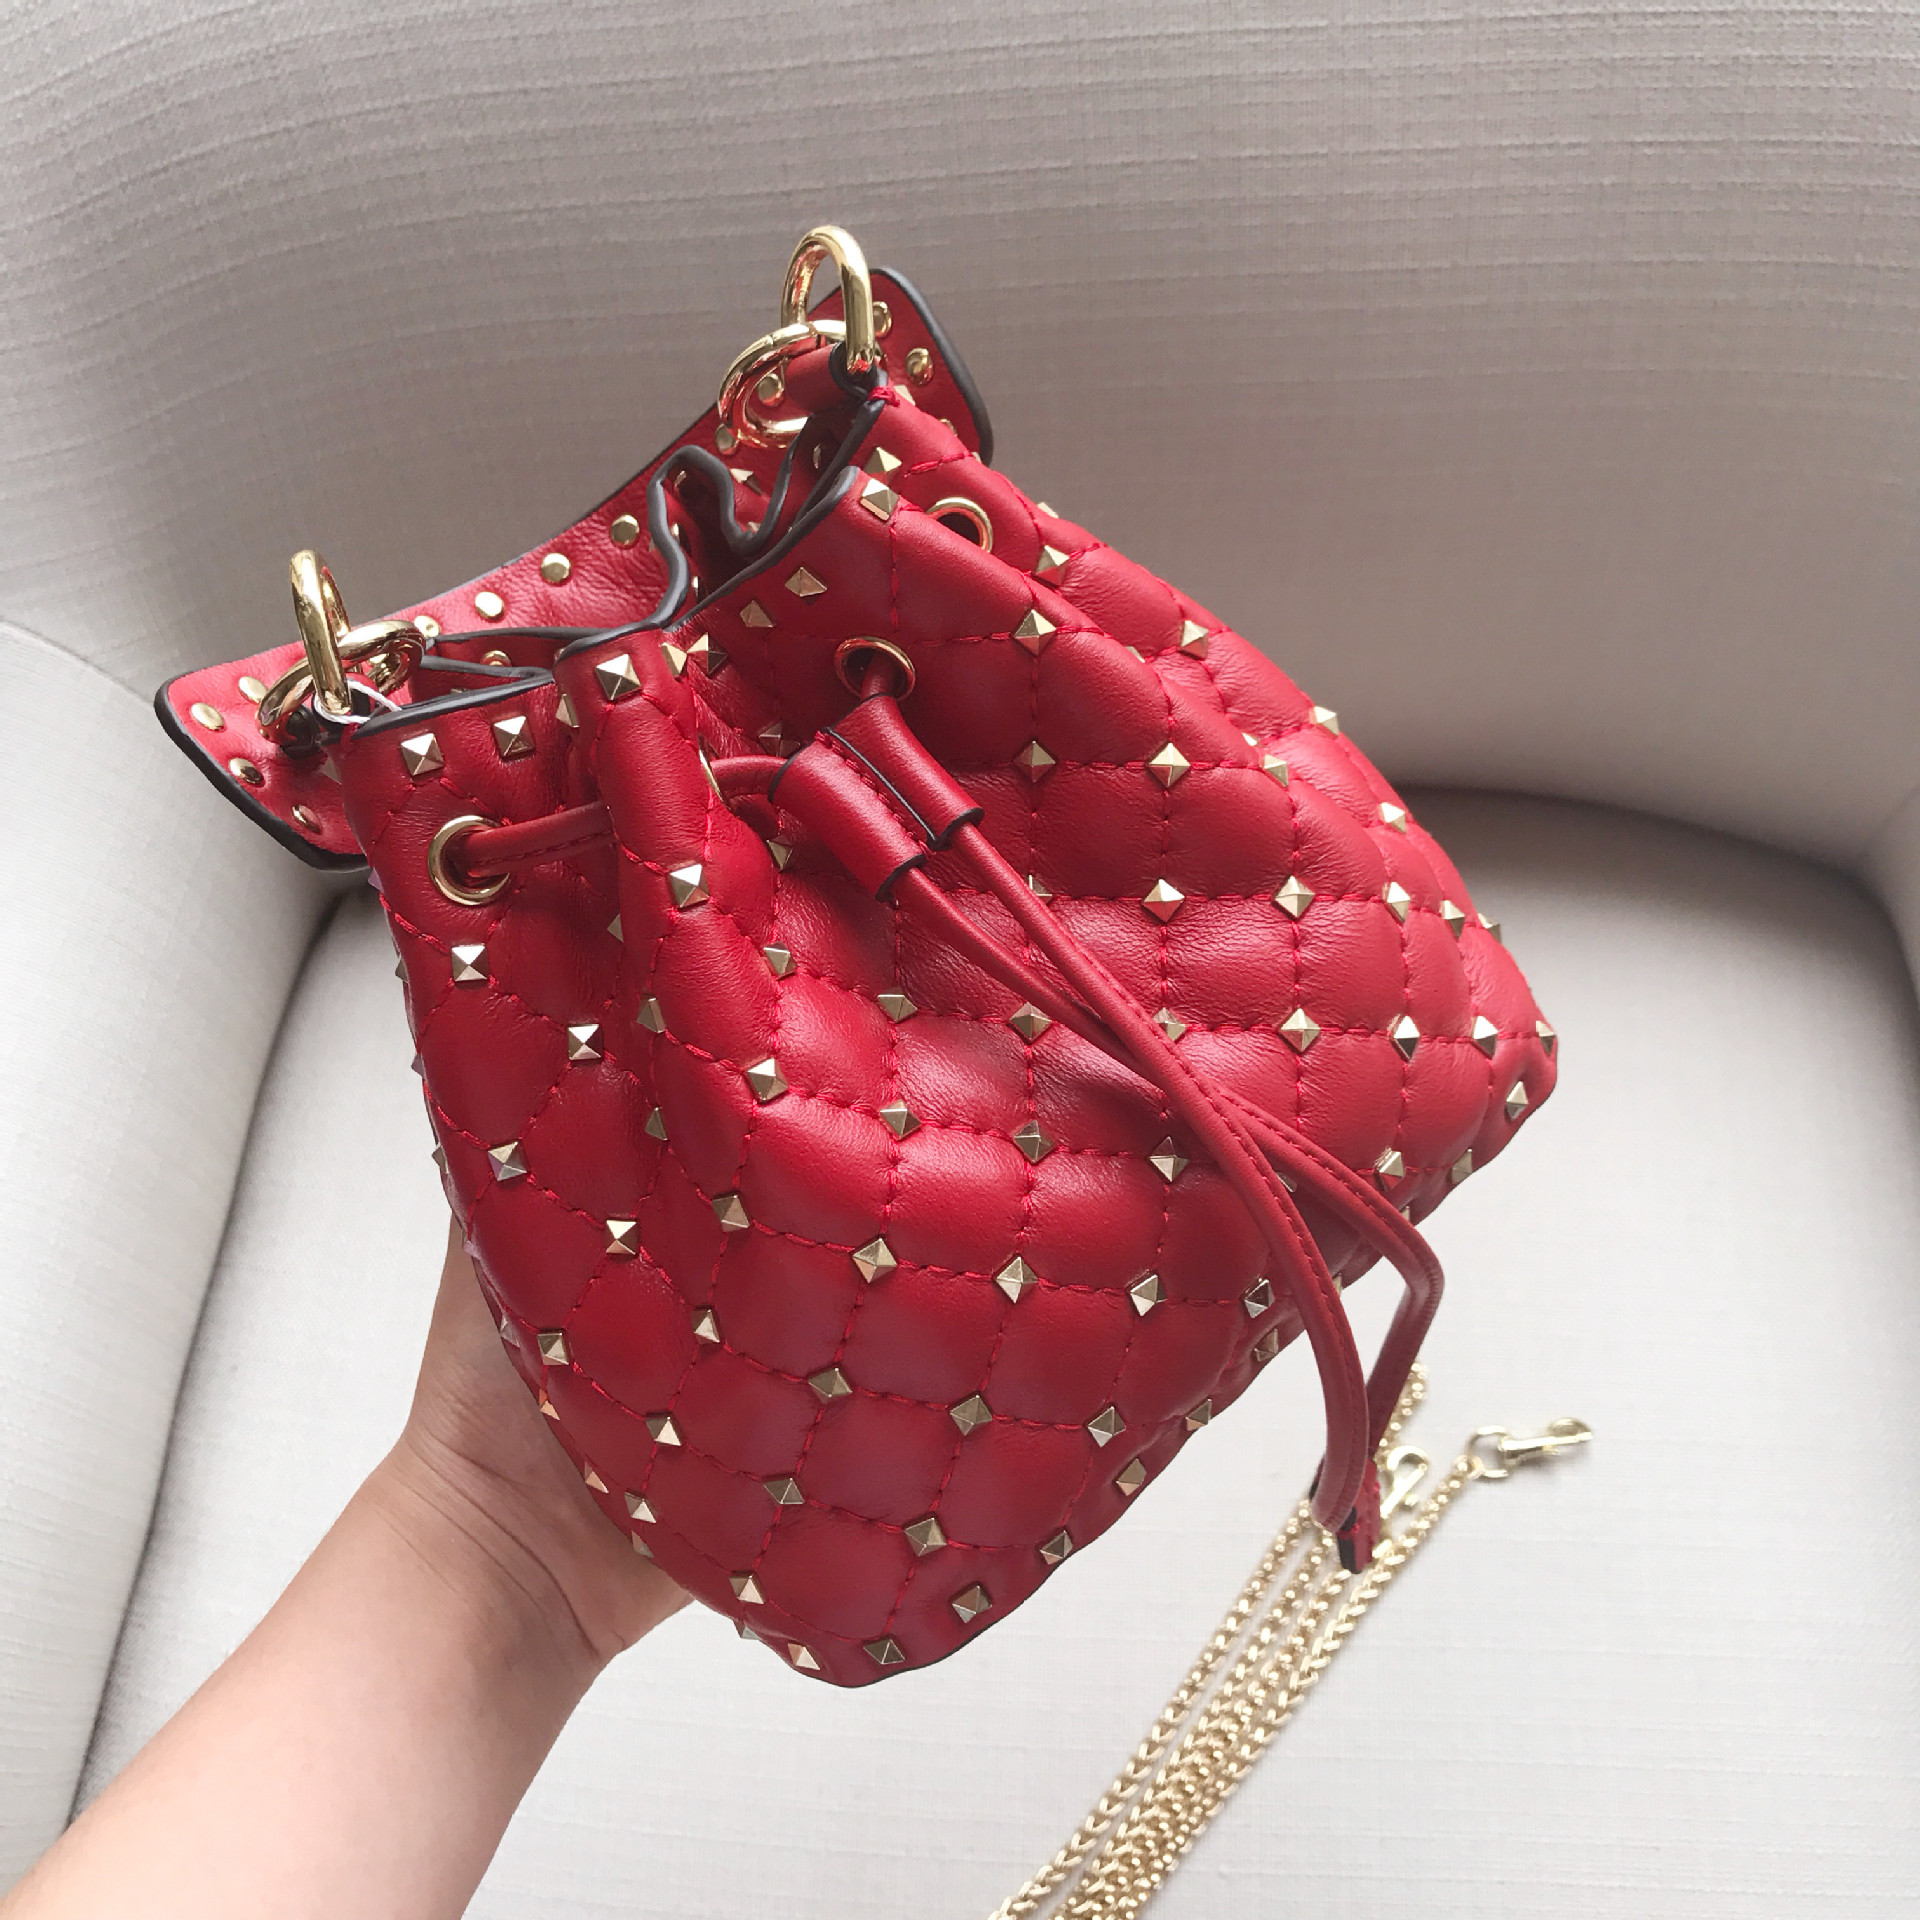 2018 NEW ALL-MATCH FASHION LEATHER HAND CLUTCH BAG LARGE SPAN SINGLE Diamond Chain Bag Sheepskin Hand-held Diagonal Shoulder Bag polaris am pilgrim